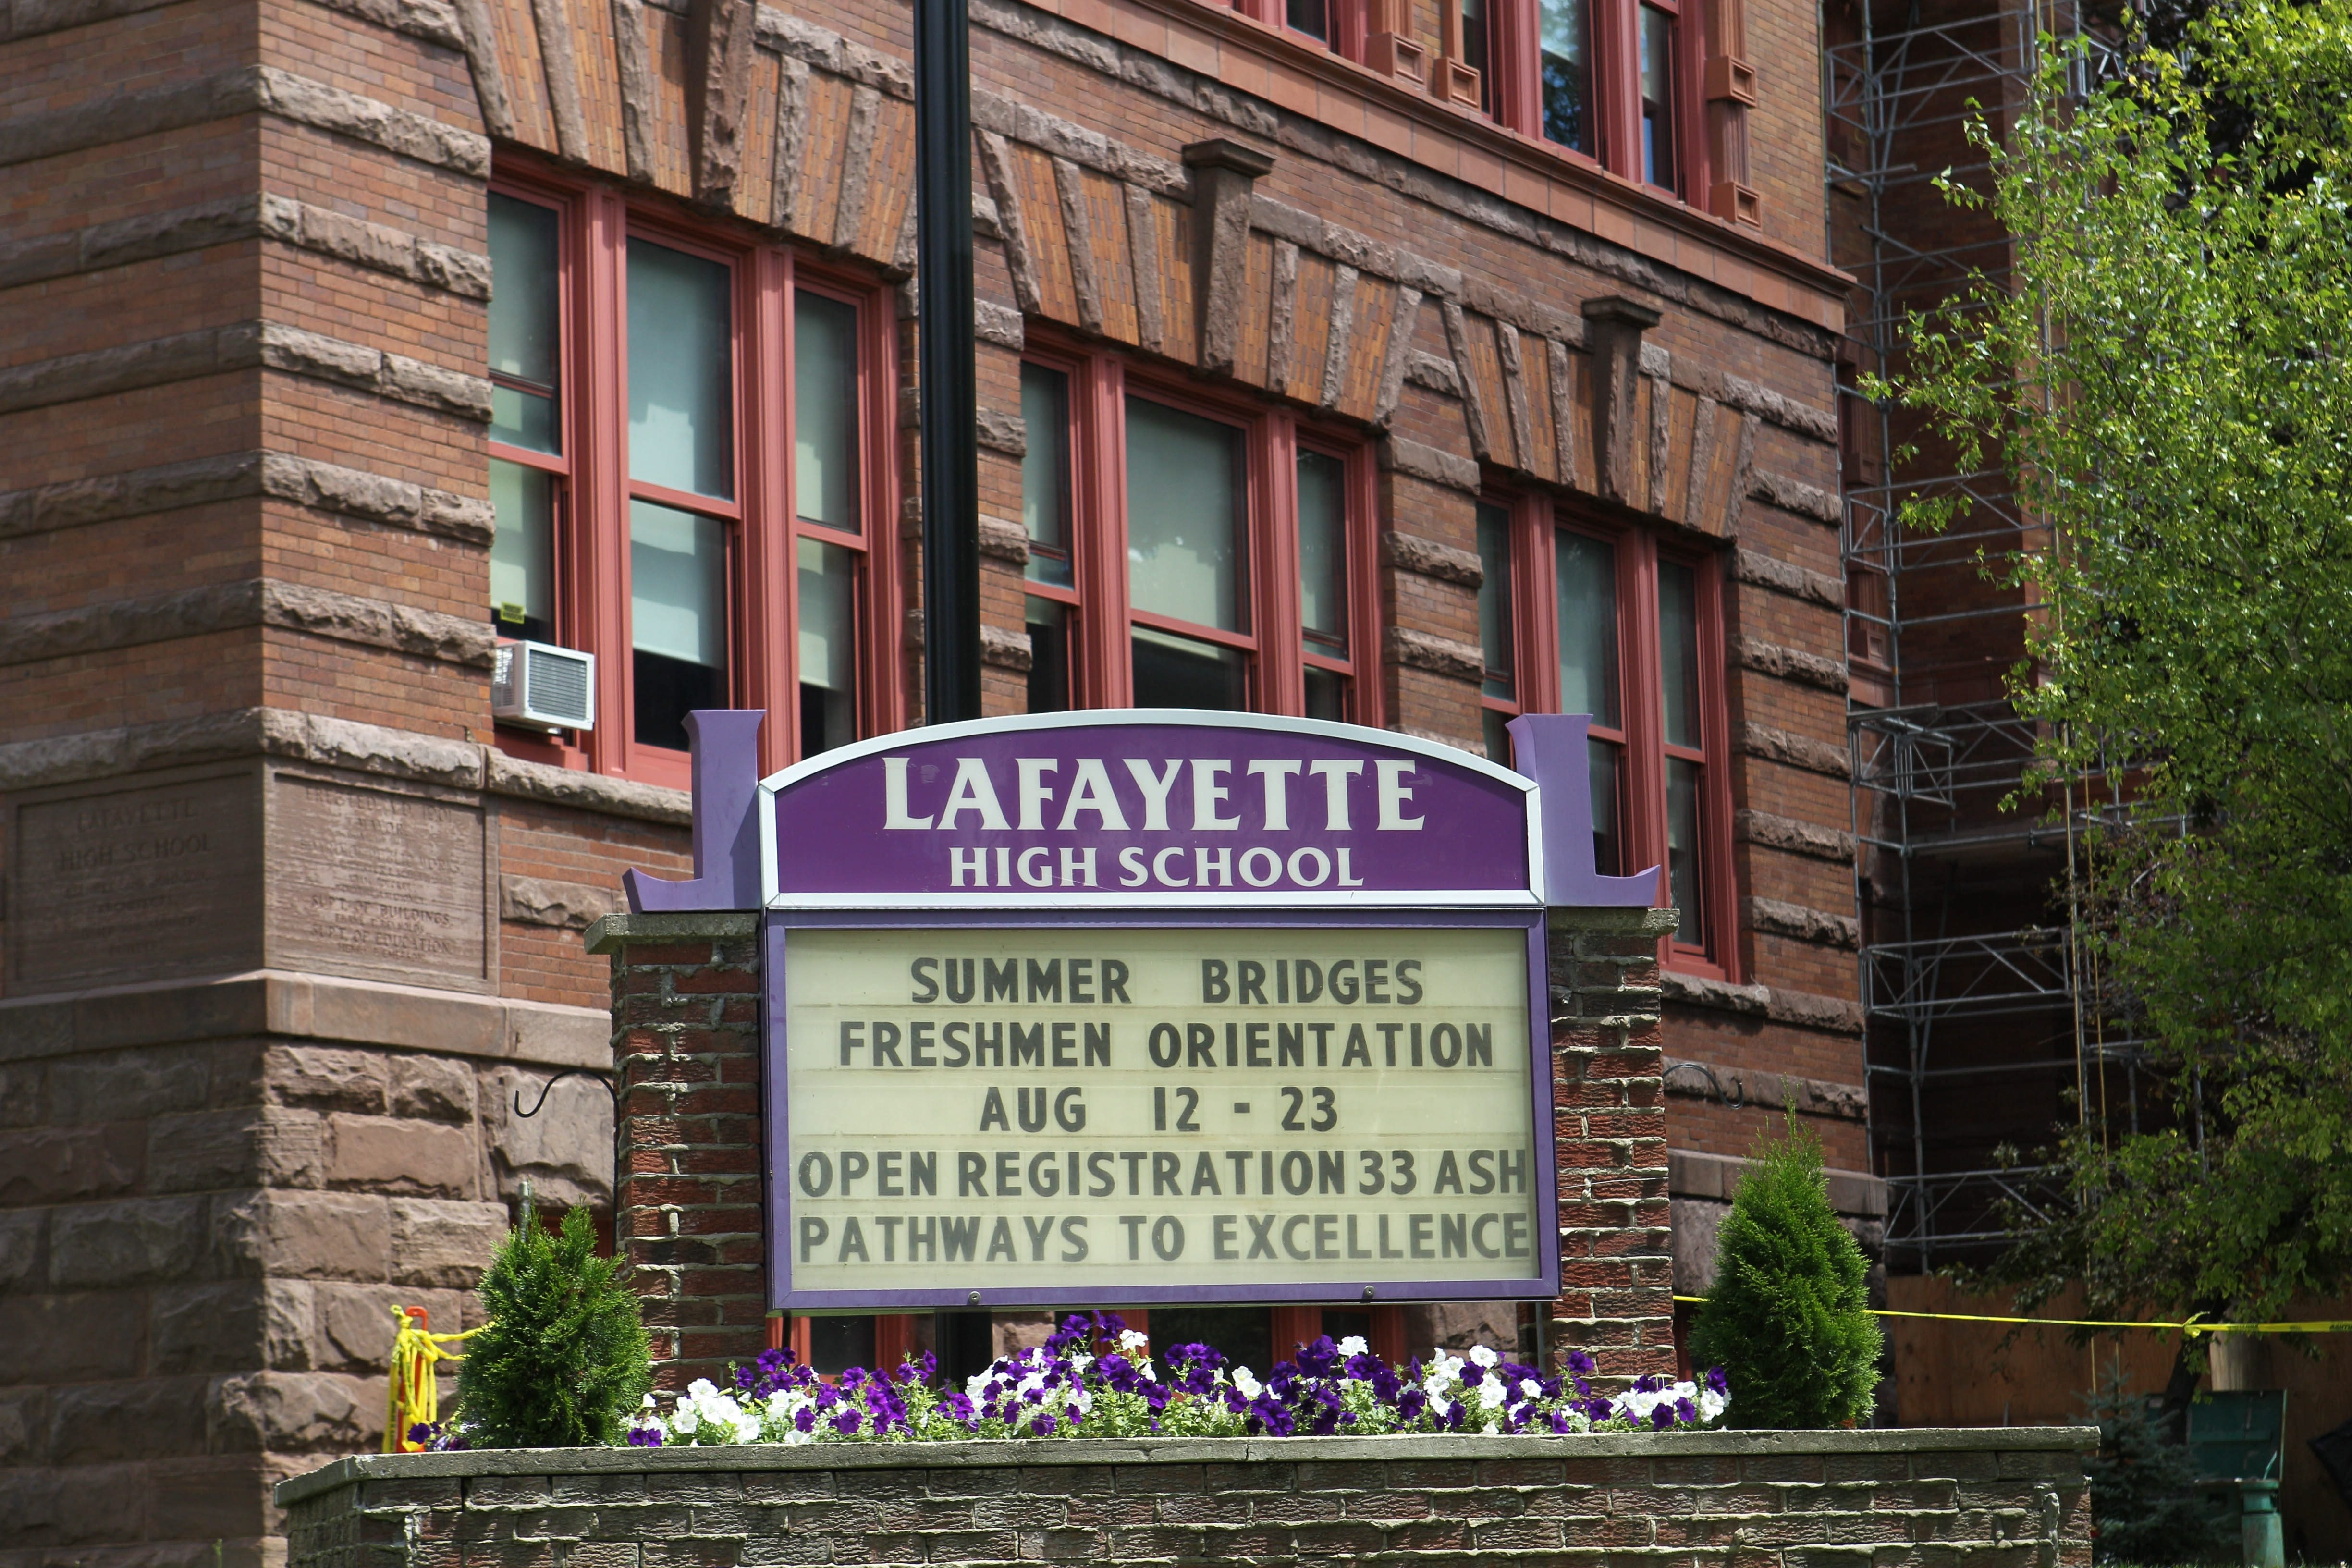 Nearly half of Lafayette High School's senior class needs help with the English language, and teachers are not properly prepared to deliver that help. (Sharon Cantillon/Buffalo News)